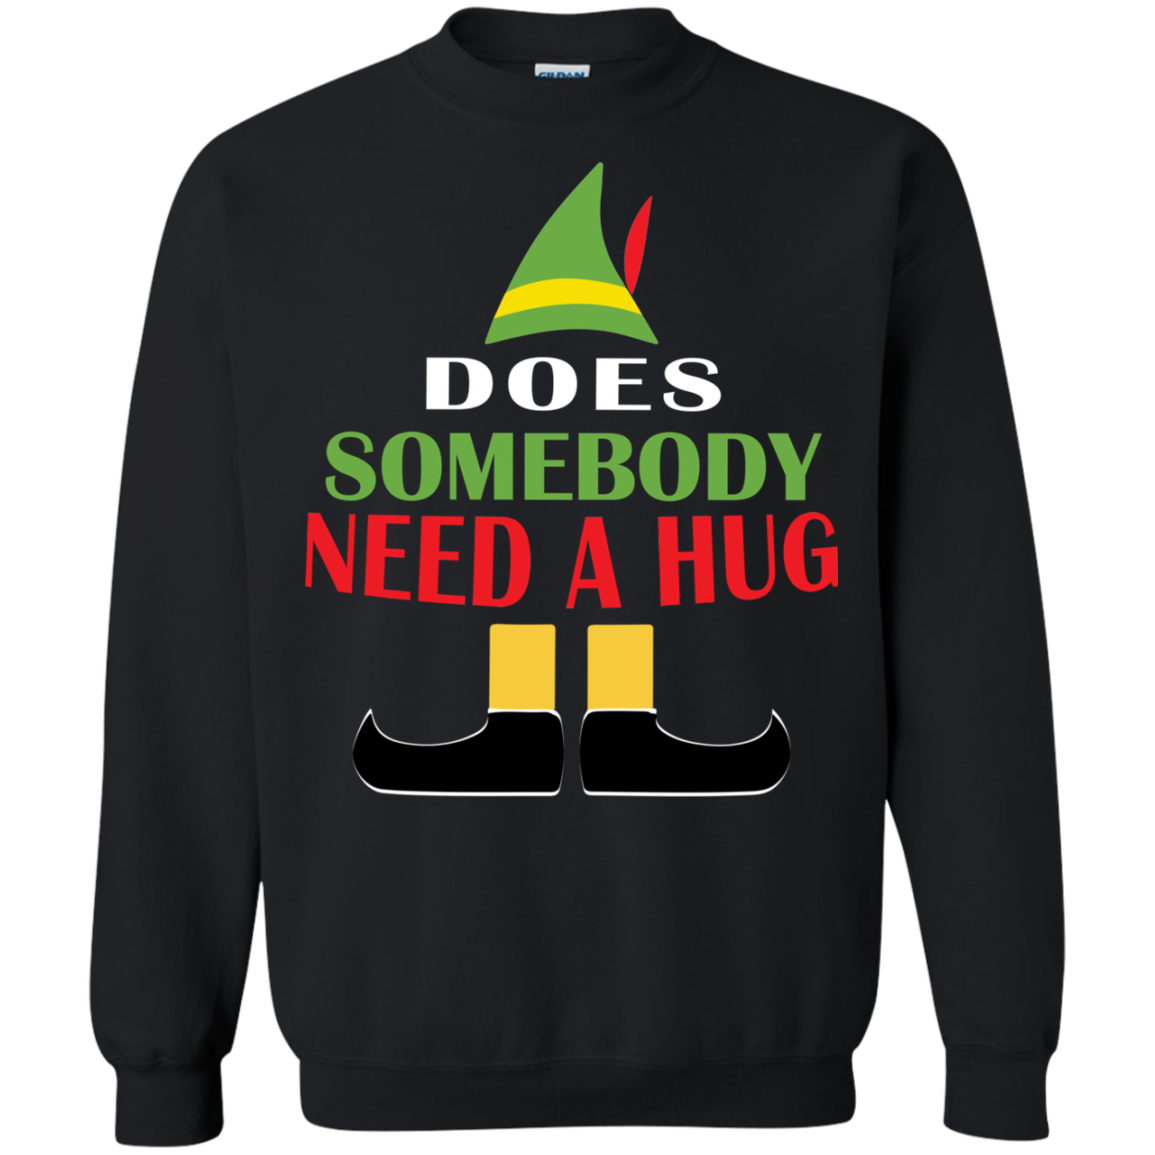 Buddy The Elf Does Somebody Need A Hug Sweater Shirts